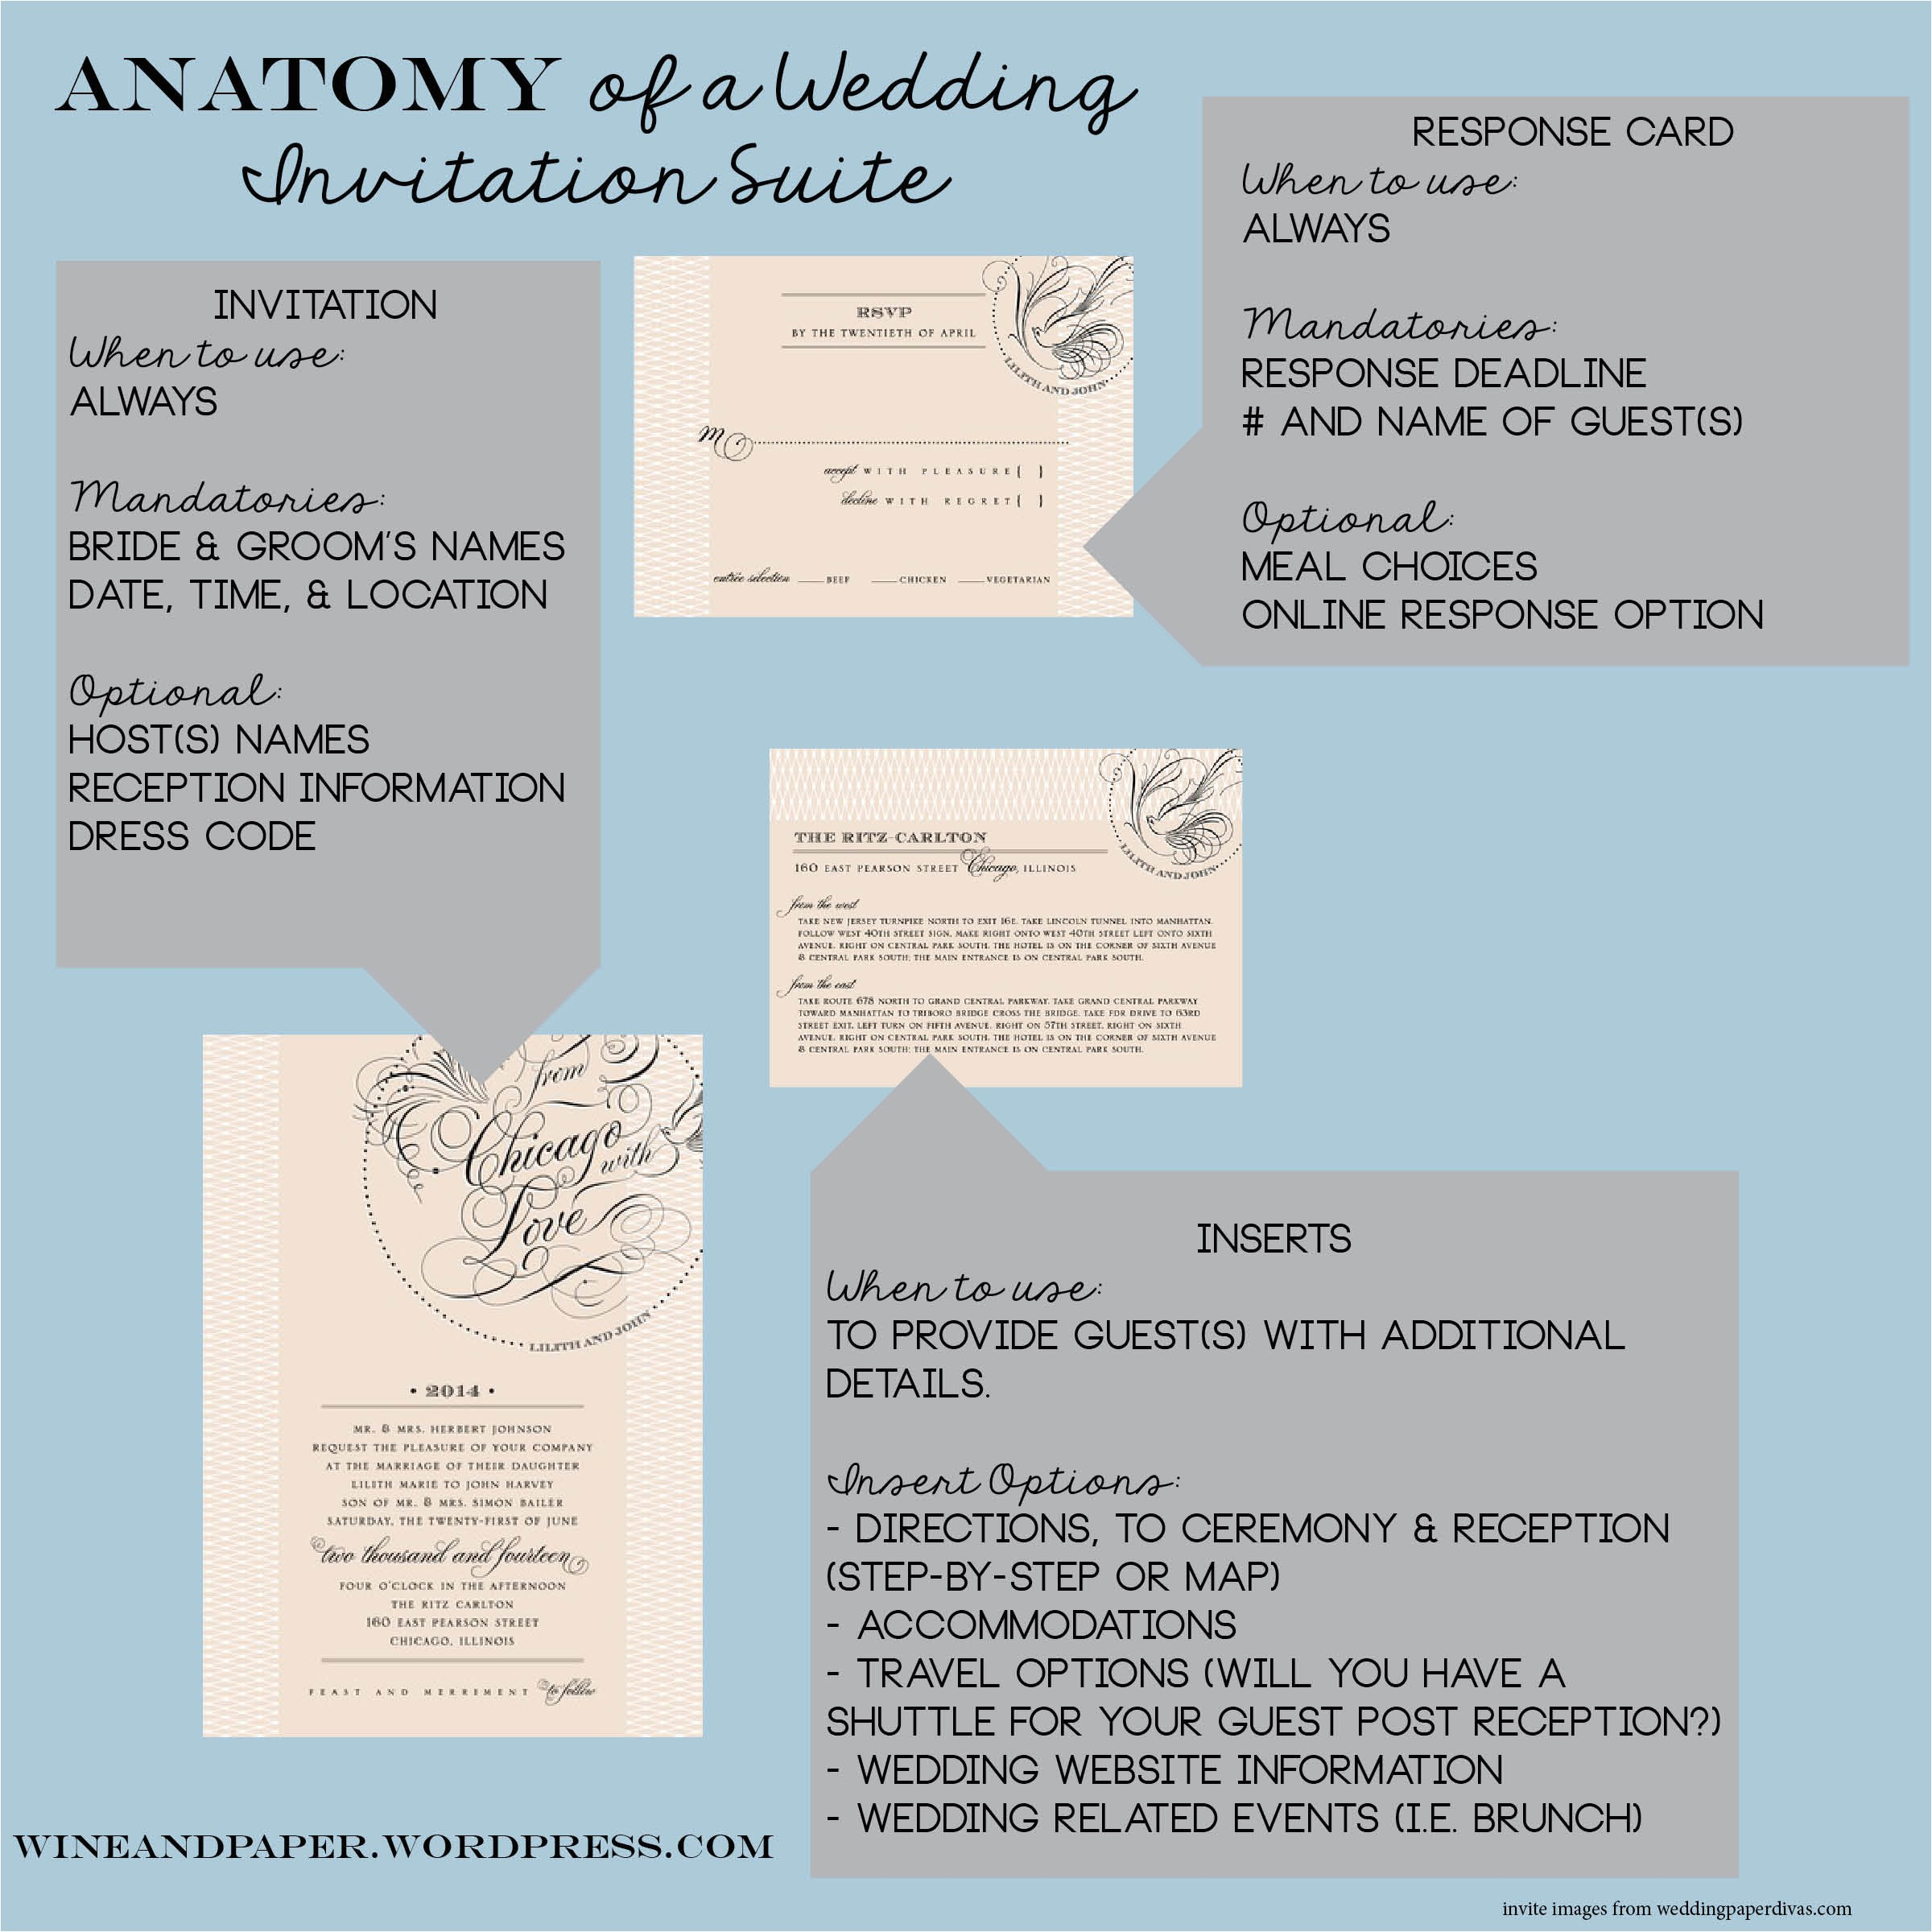 What is Included In A Wedding Invitation Suite the Anatomy Of A Wedding Invitation Suite Wine Paper